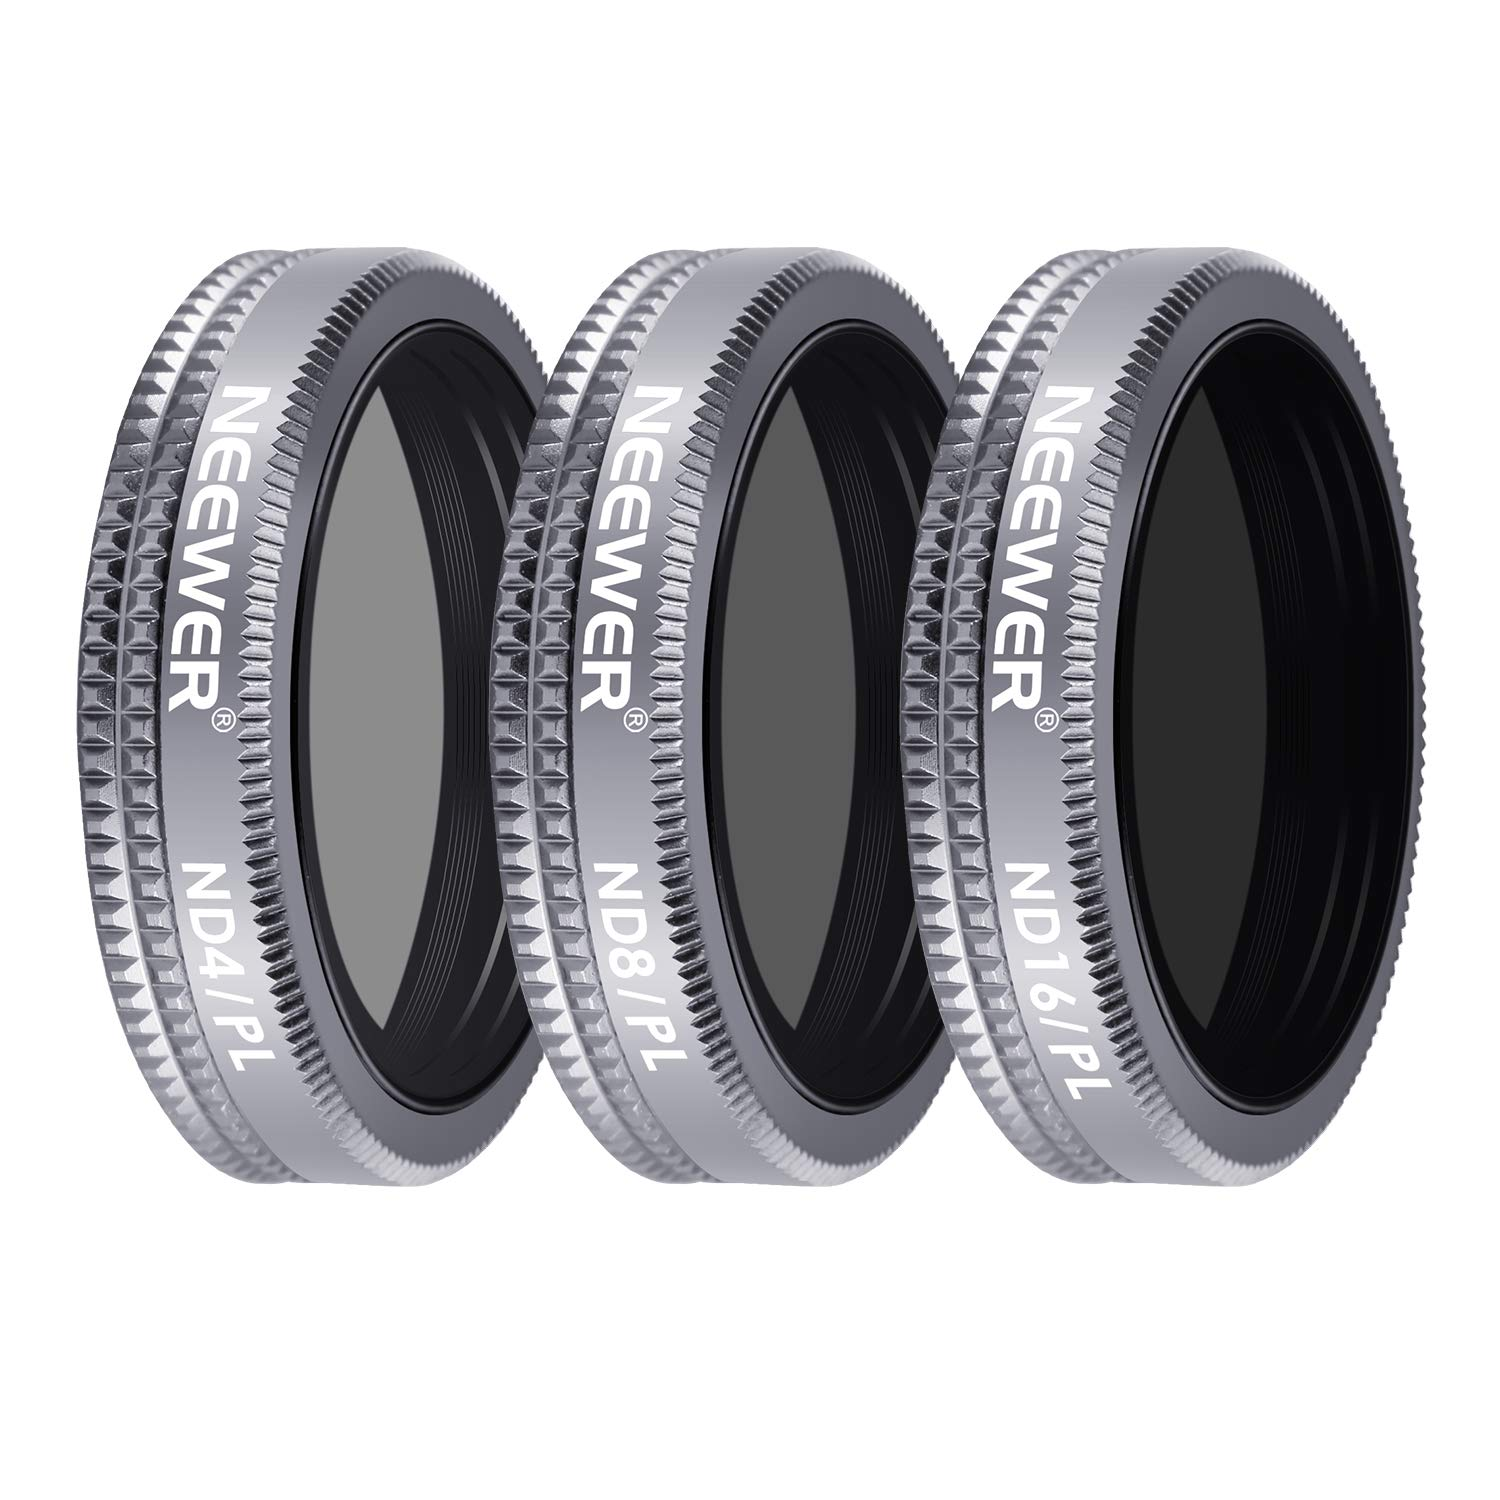 Neewer 4 Pieces Lens Filter Shutter Filter Kit for DJI Mavic 2 Zoom, Includes Multi-Coated ND32 ND64 ND32/PL ND64/PL Filters with Carrying Box for Outdoor Photography(Grey) 10094238